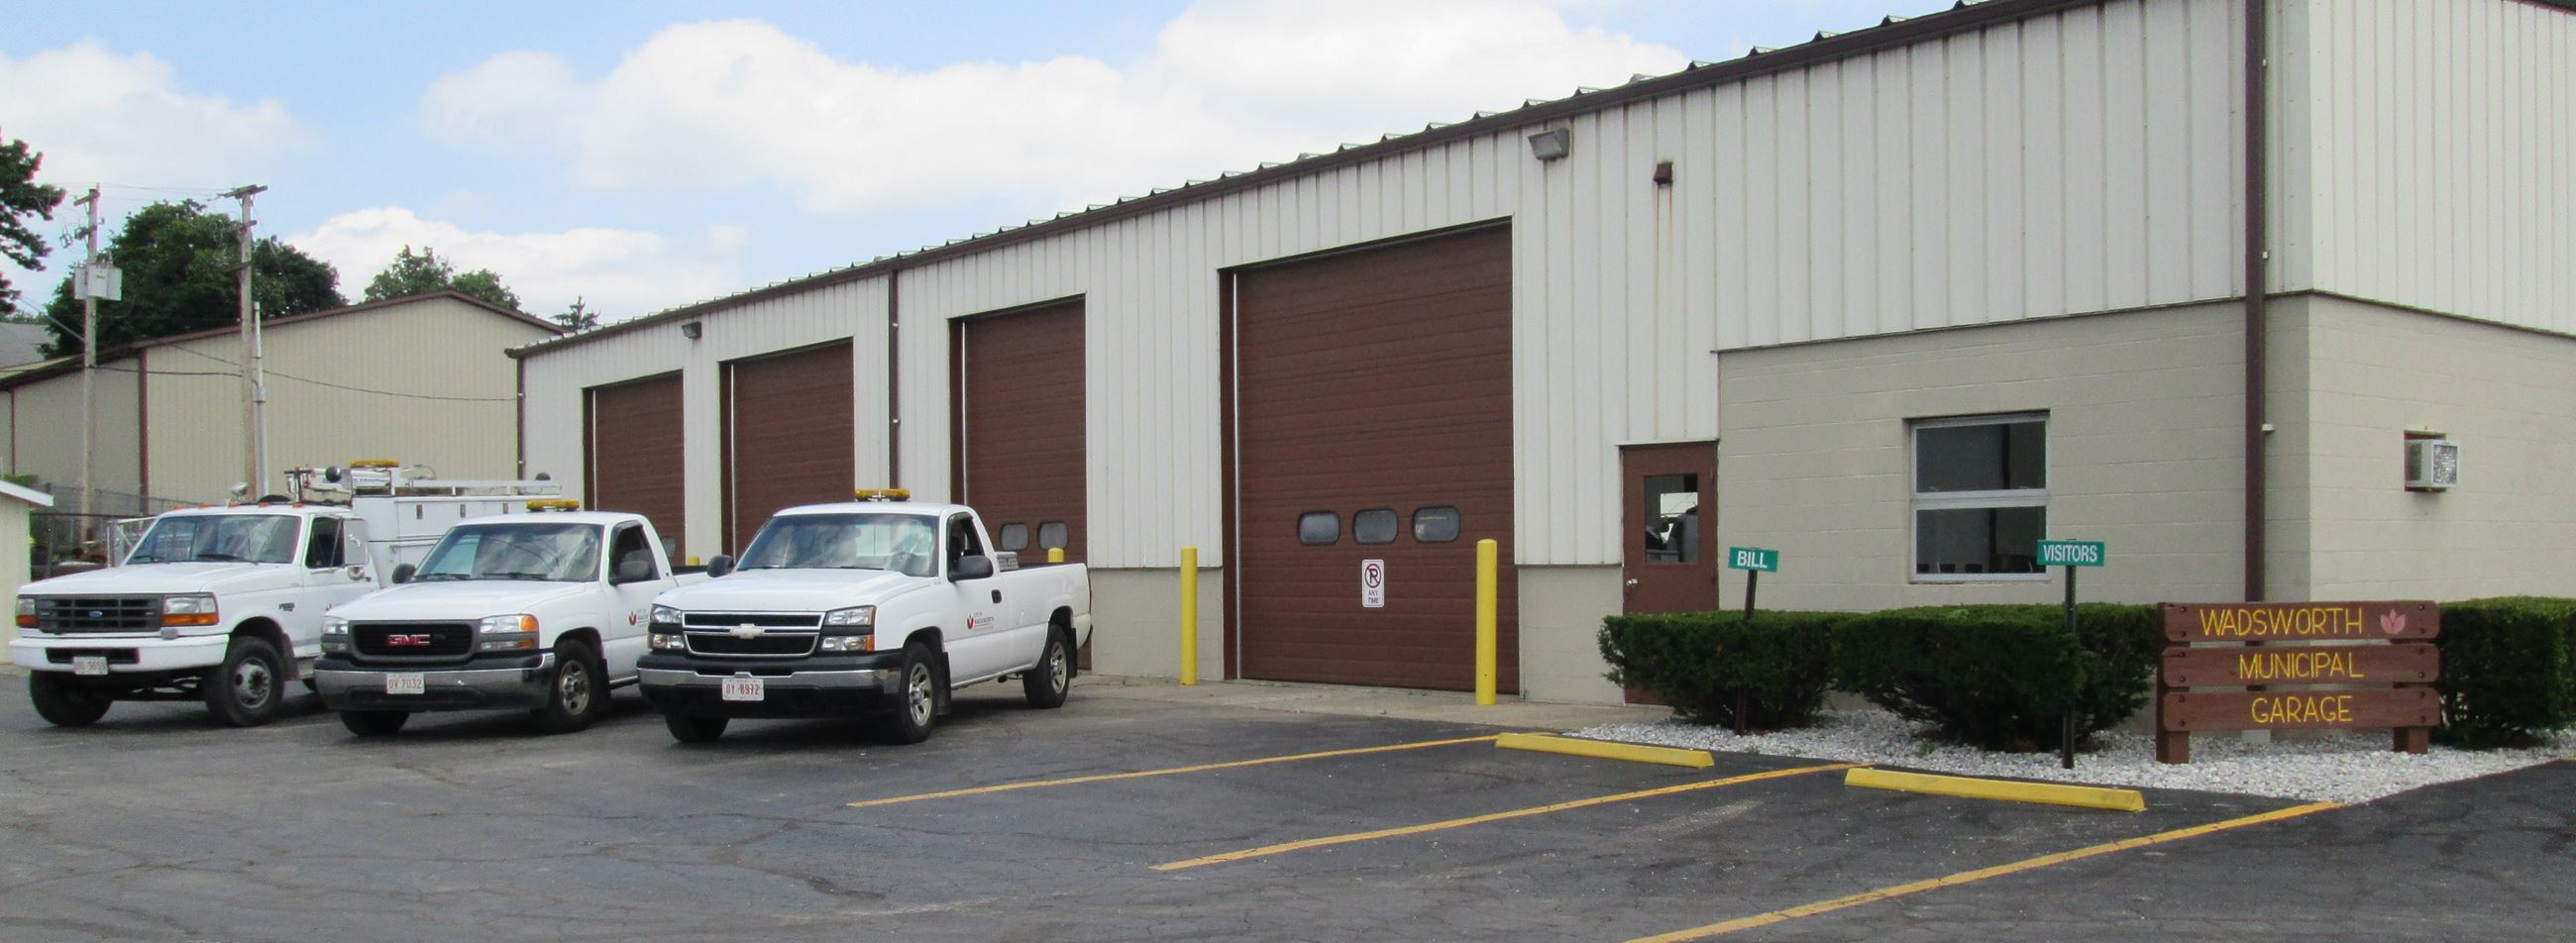 A large garage building with white trucks parked in front.